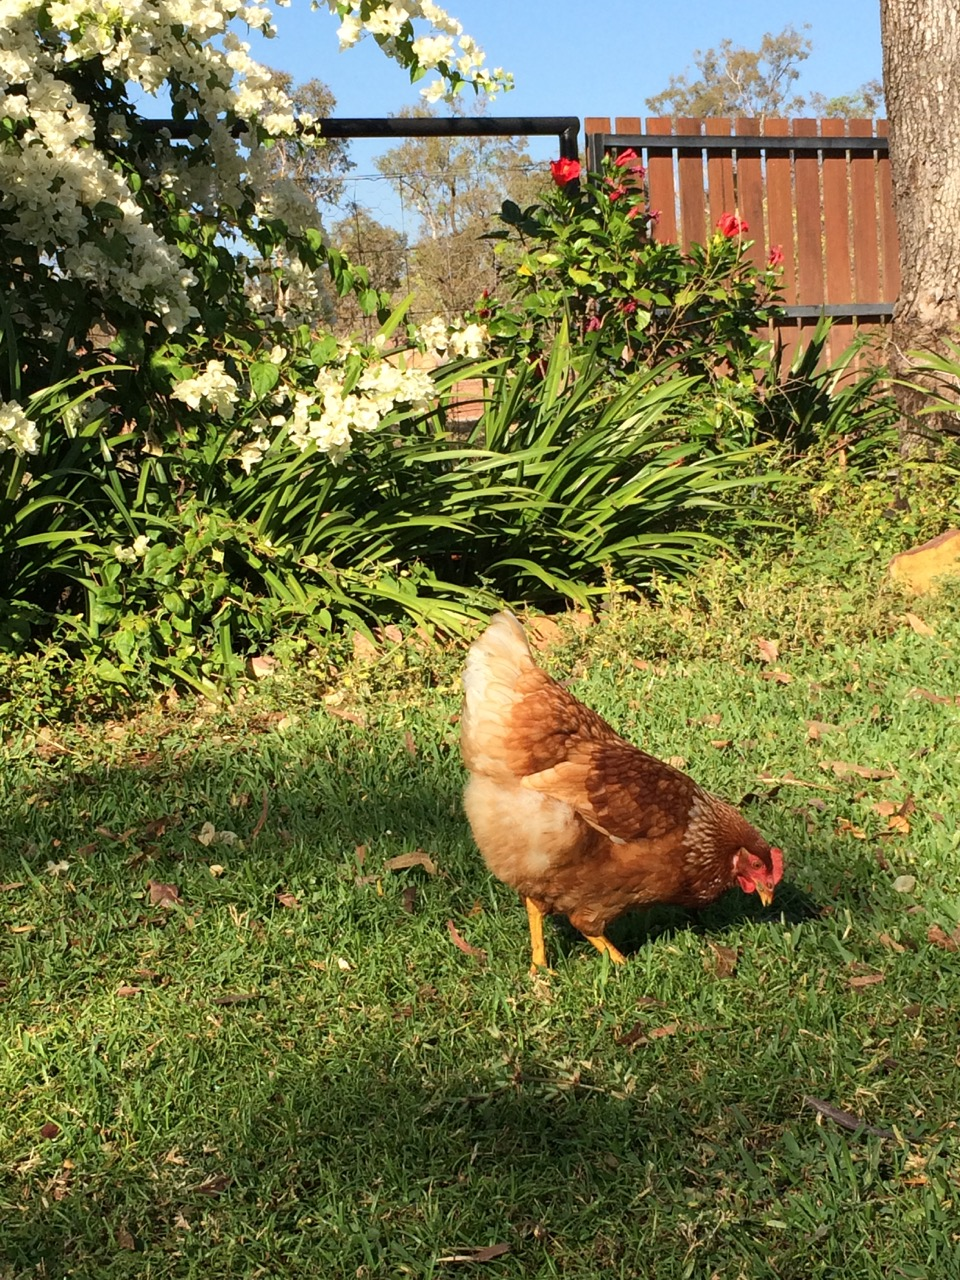 These chooks sure were fun to put away at night...